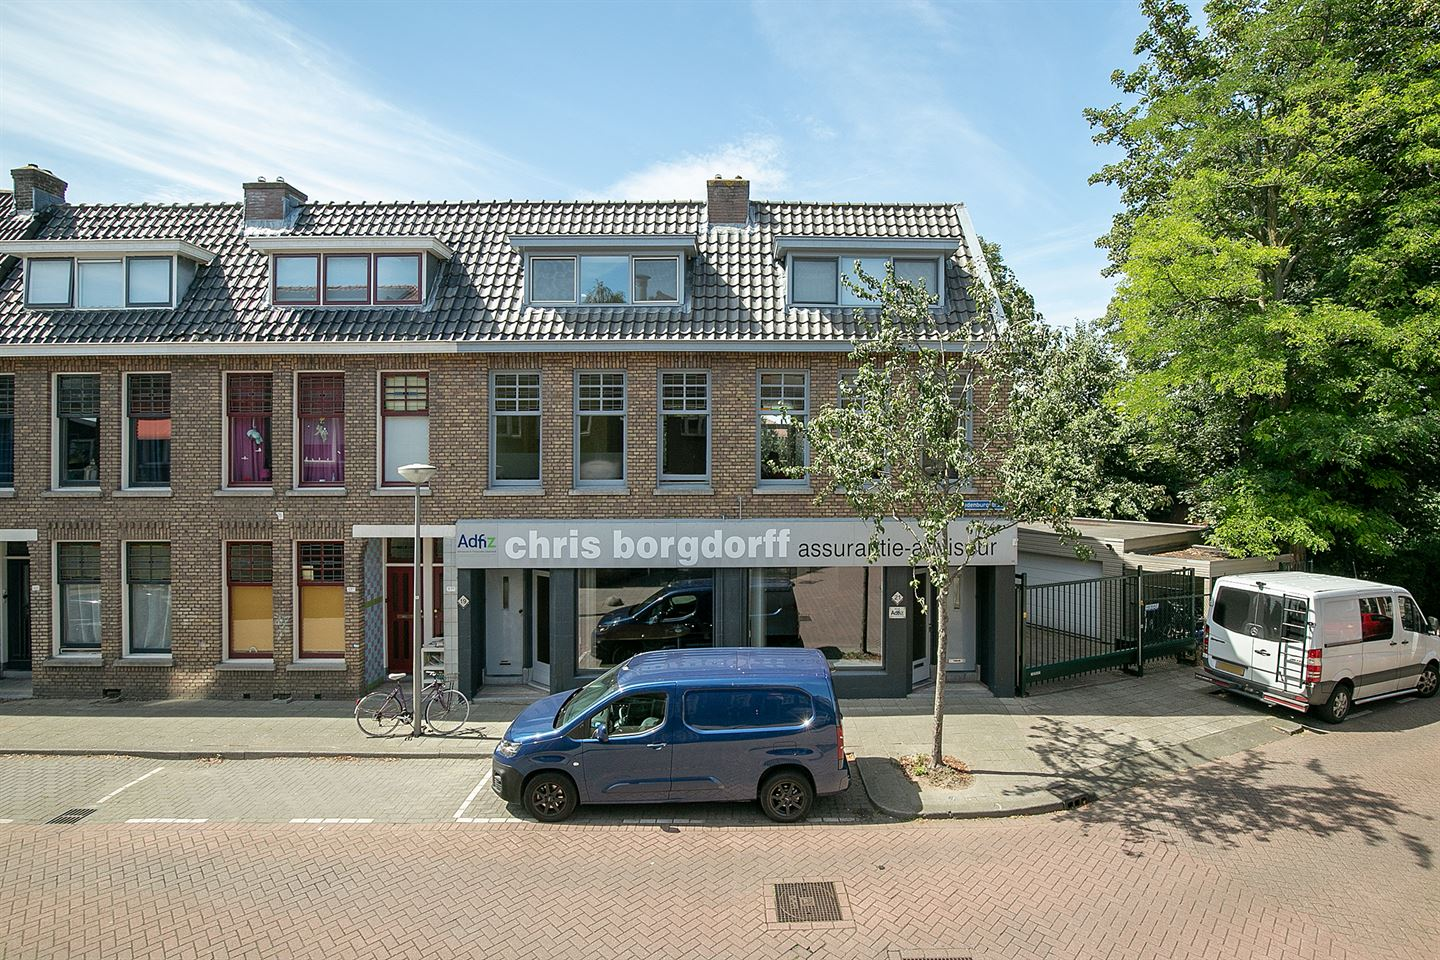 View photo 1 of Rodenburgstraat 19 - 21